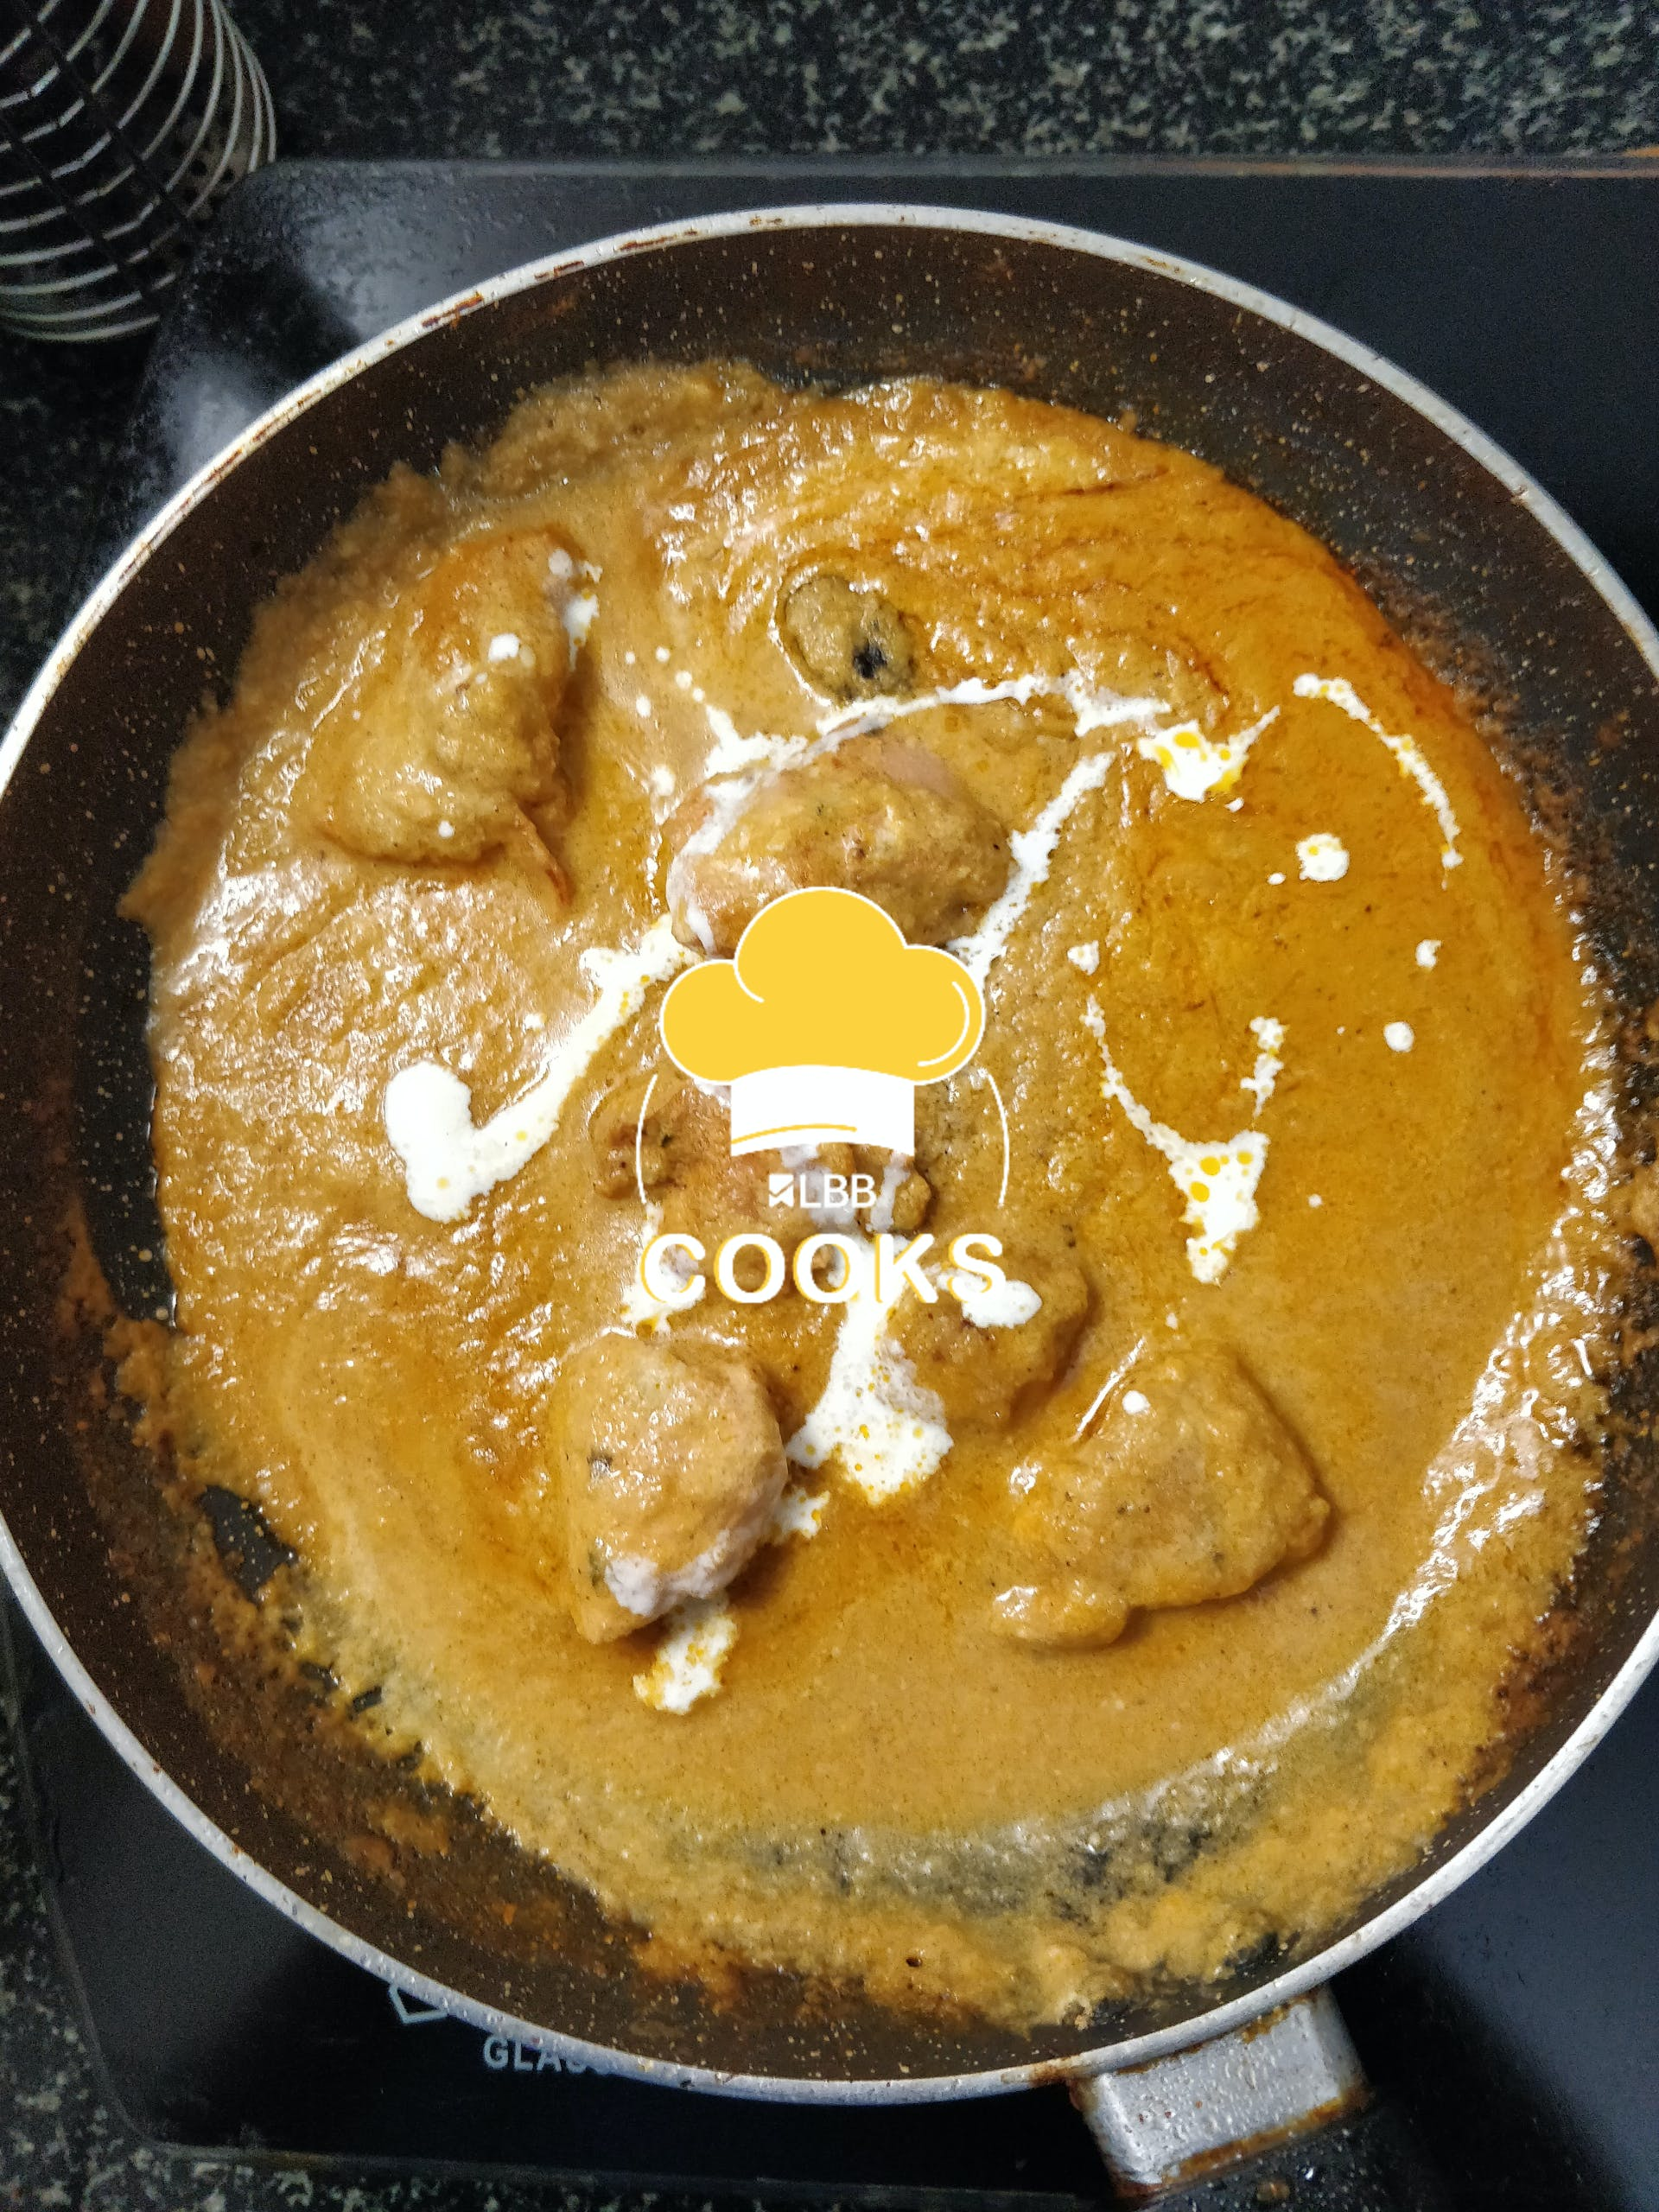 Dish,Food,Cuisine,Ingredient,Yellow curry,Gravy,Curry,Produce,Recipe,Korma